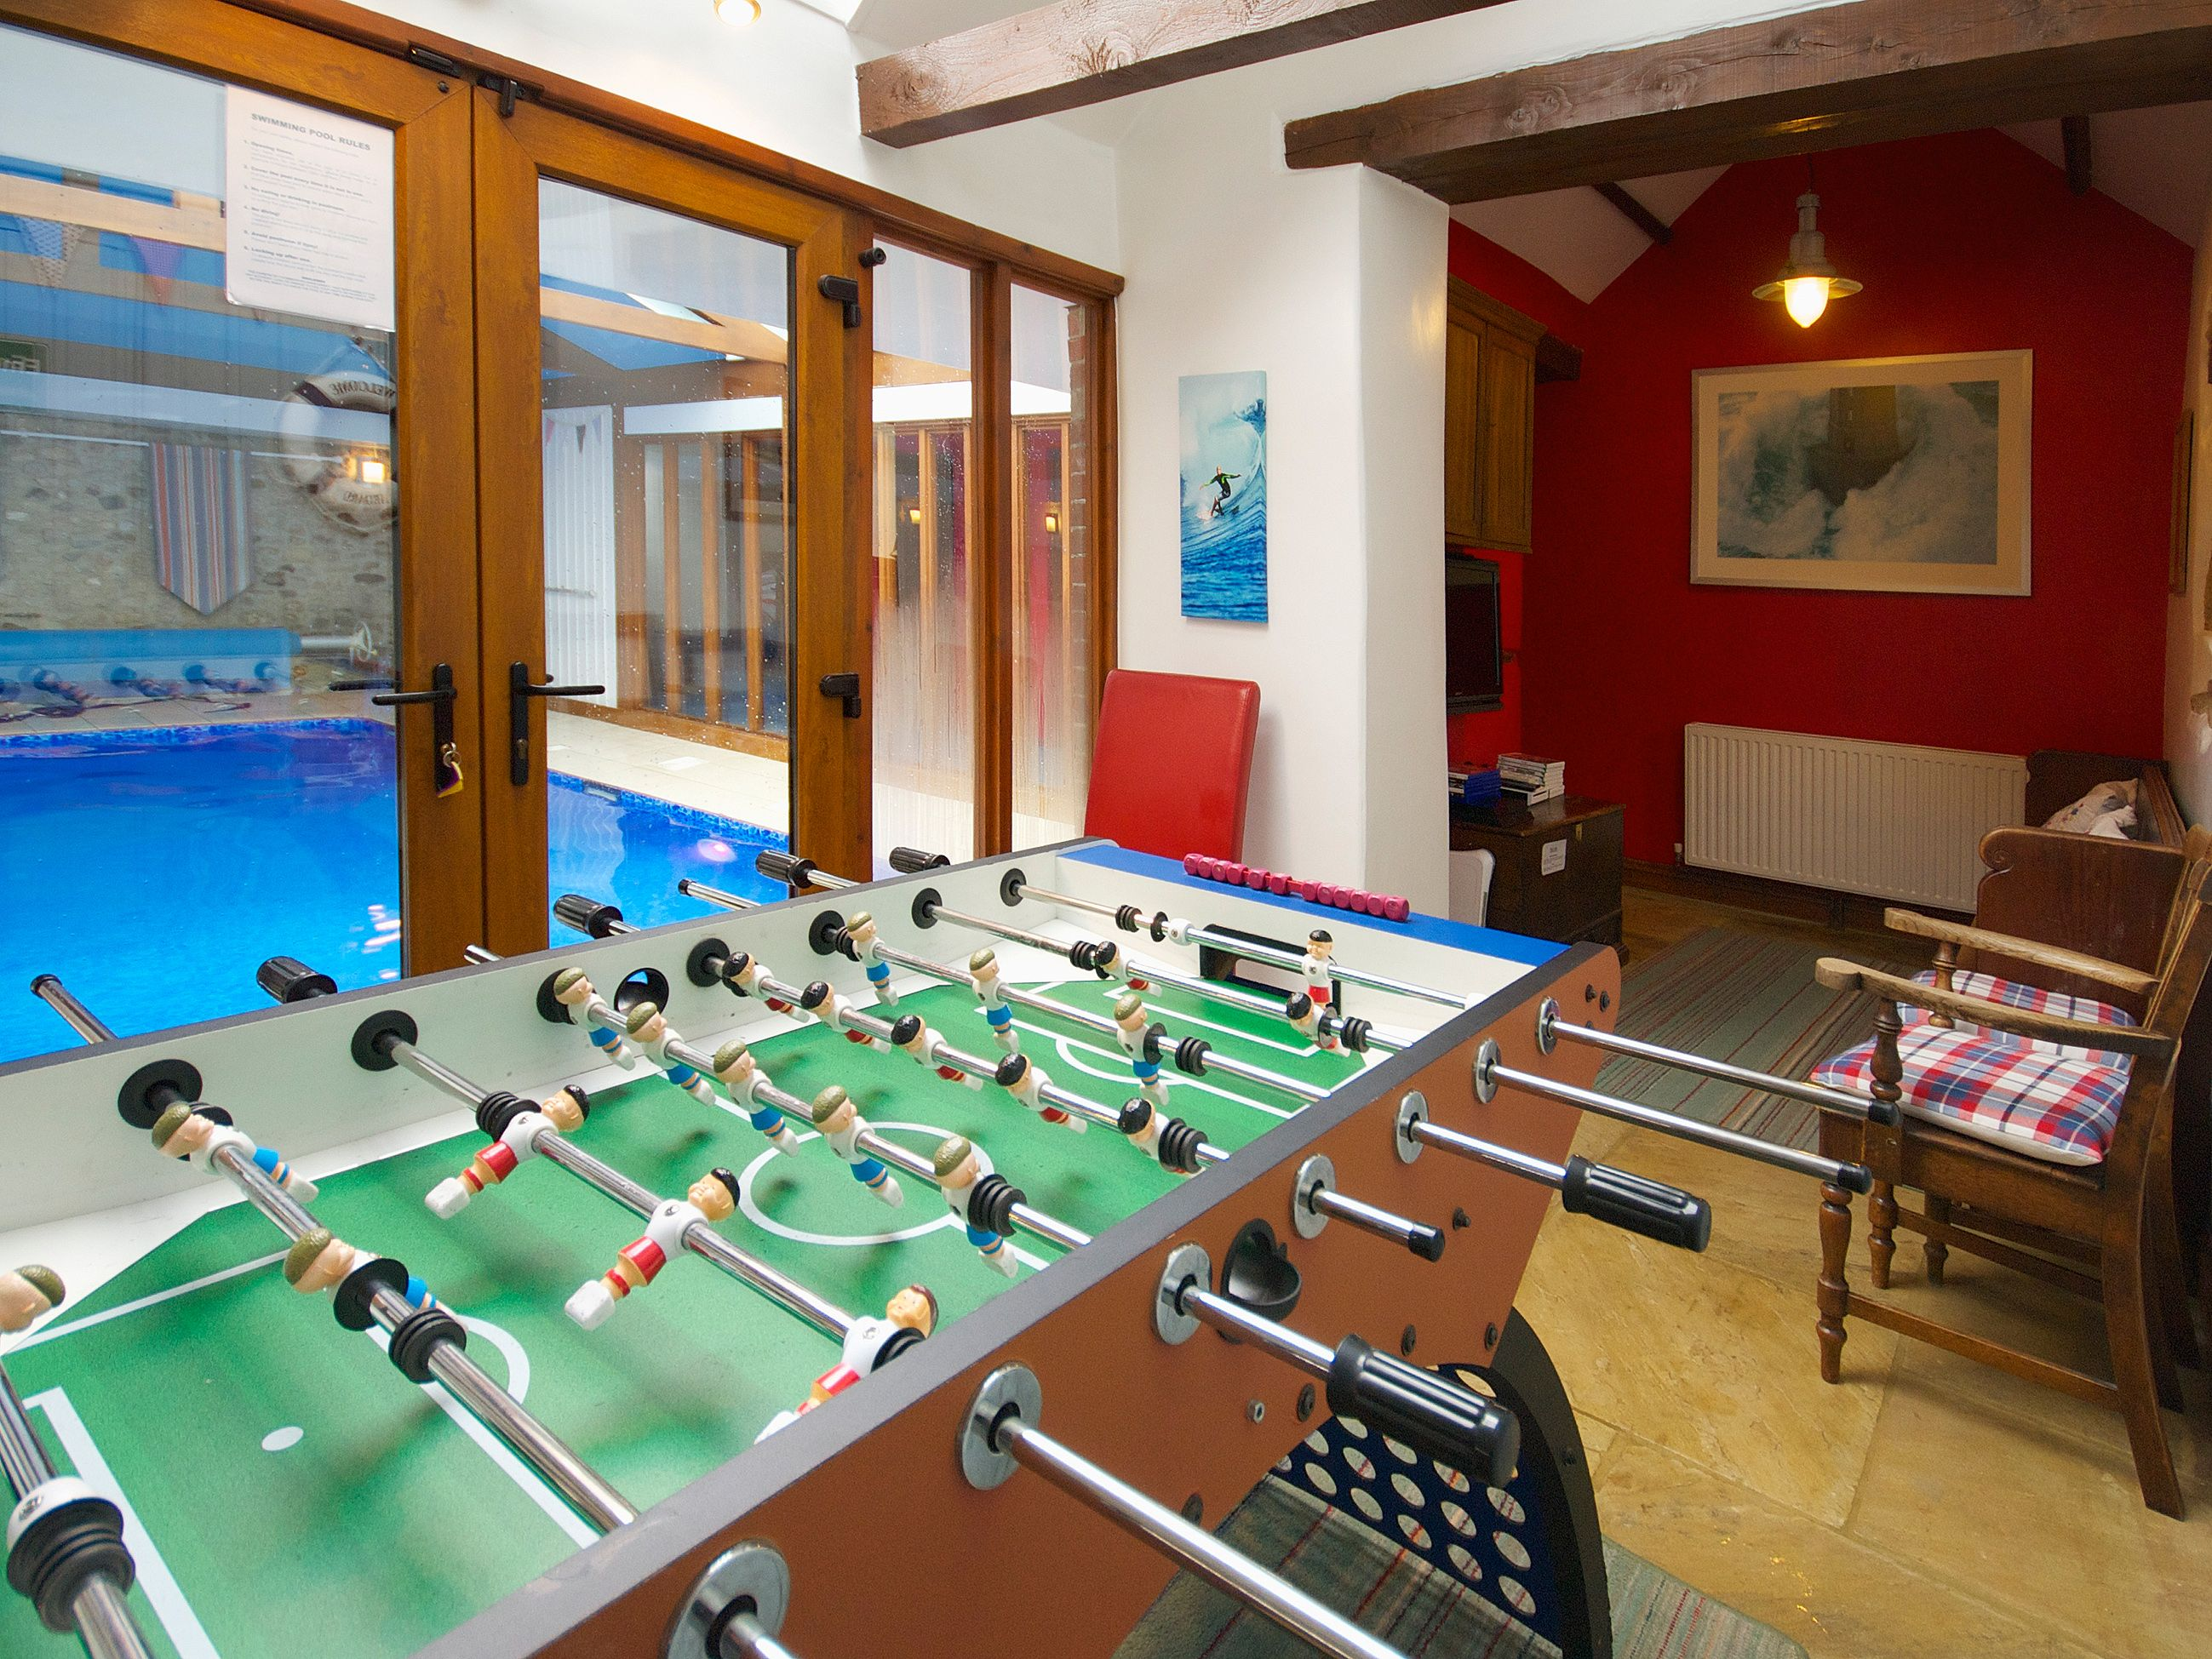 With Use Of A Superb Indoor Heated Swimming Pool And Games Room This  Spacious Property Is Ideal For A Family Holiday.